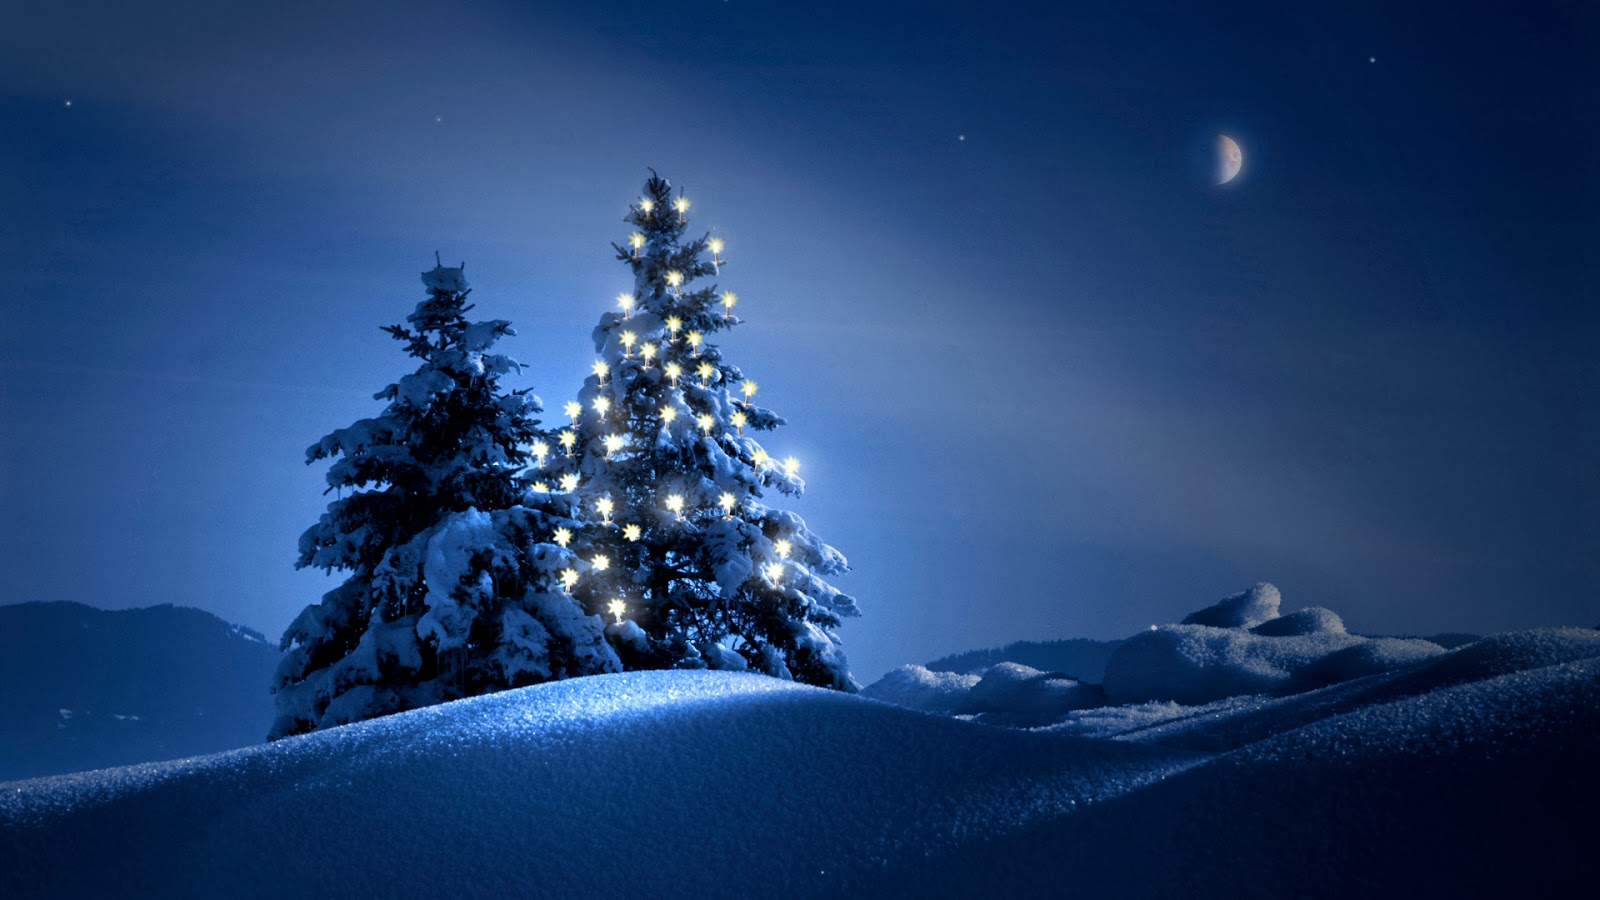 Wallpaper Desk : Winter Night Latest WallpaperWallpaper Desk